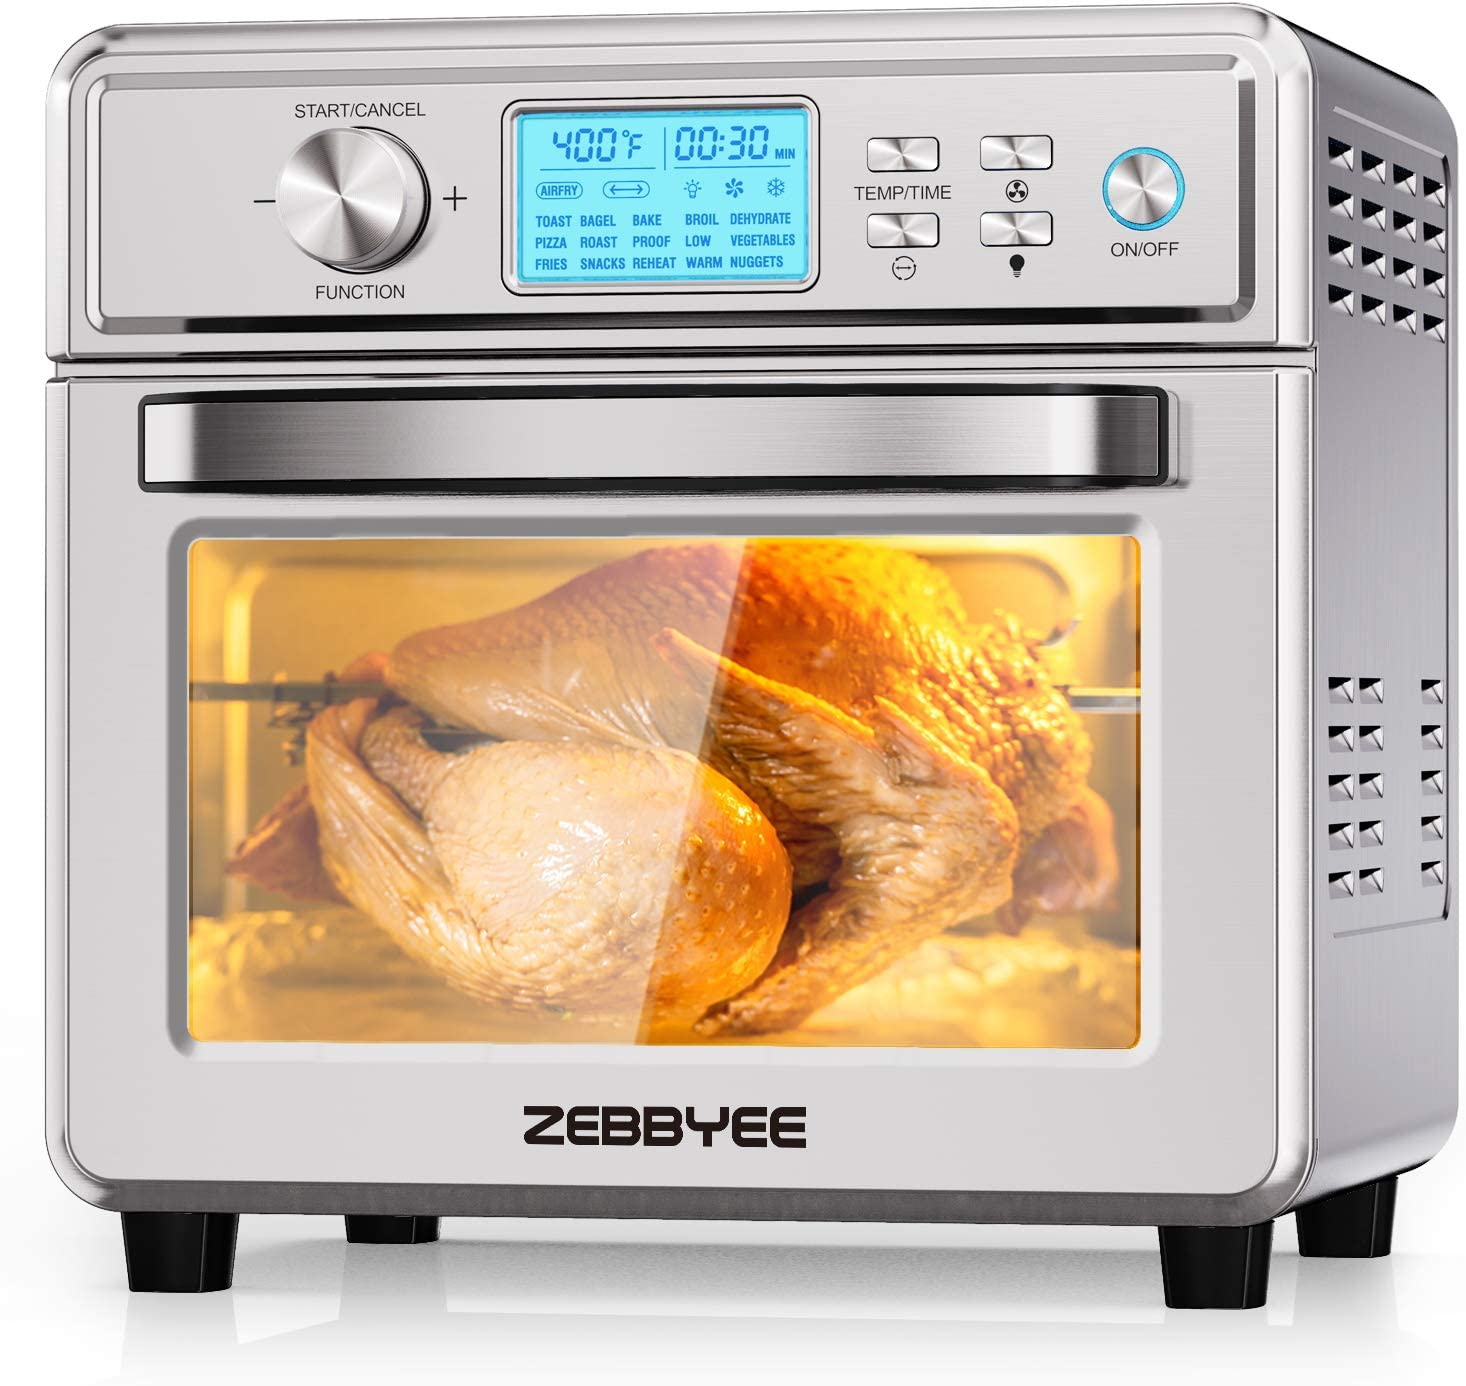 Zebbyee Convection Oven, 22.2QT Air Fryer Oven, 16-in-1 Toaster Oven Airfryer Combo, 1700W Stainless Steel Oven with Temperature Control, Thawing, Defrost, Dehydrate, 5 Accessories. ETL Certified